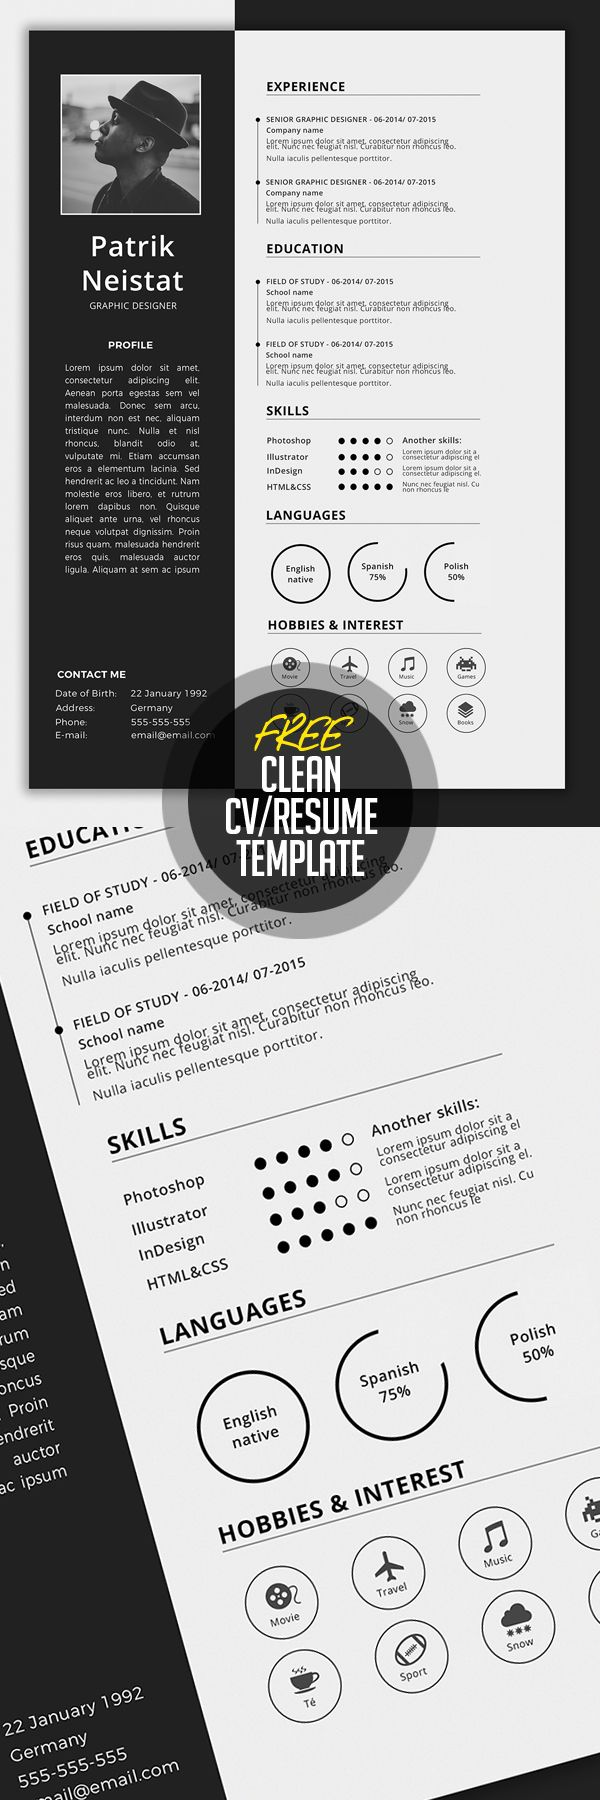 best ideas about cv template cv design simple cv resume template more